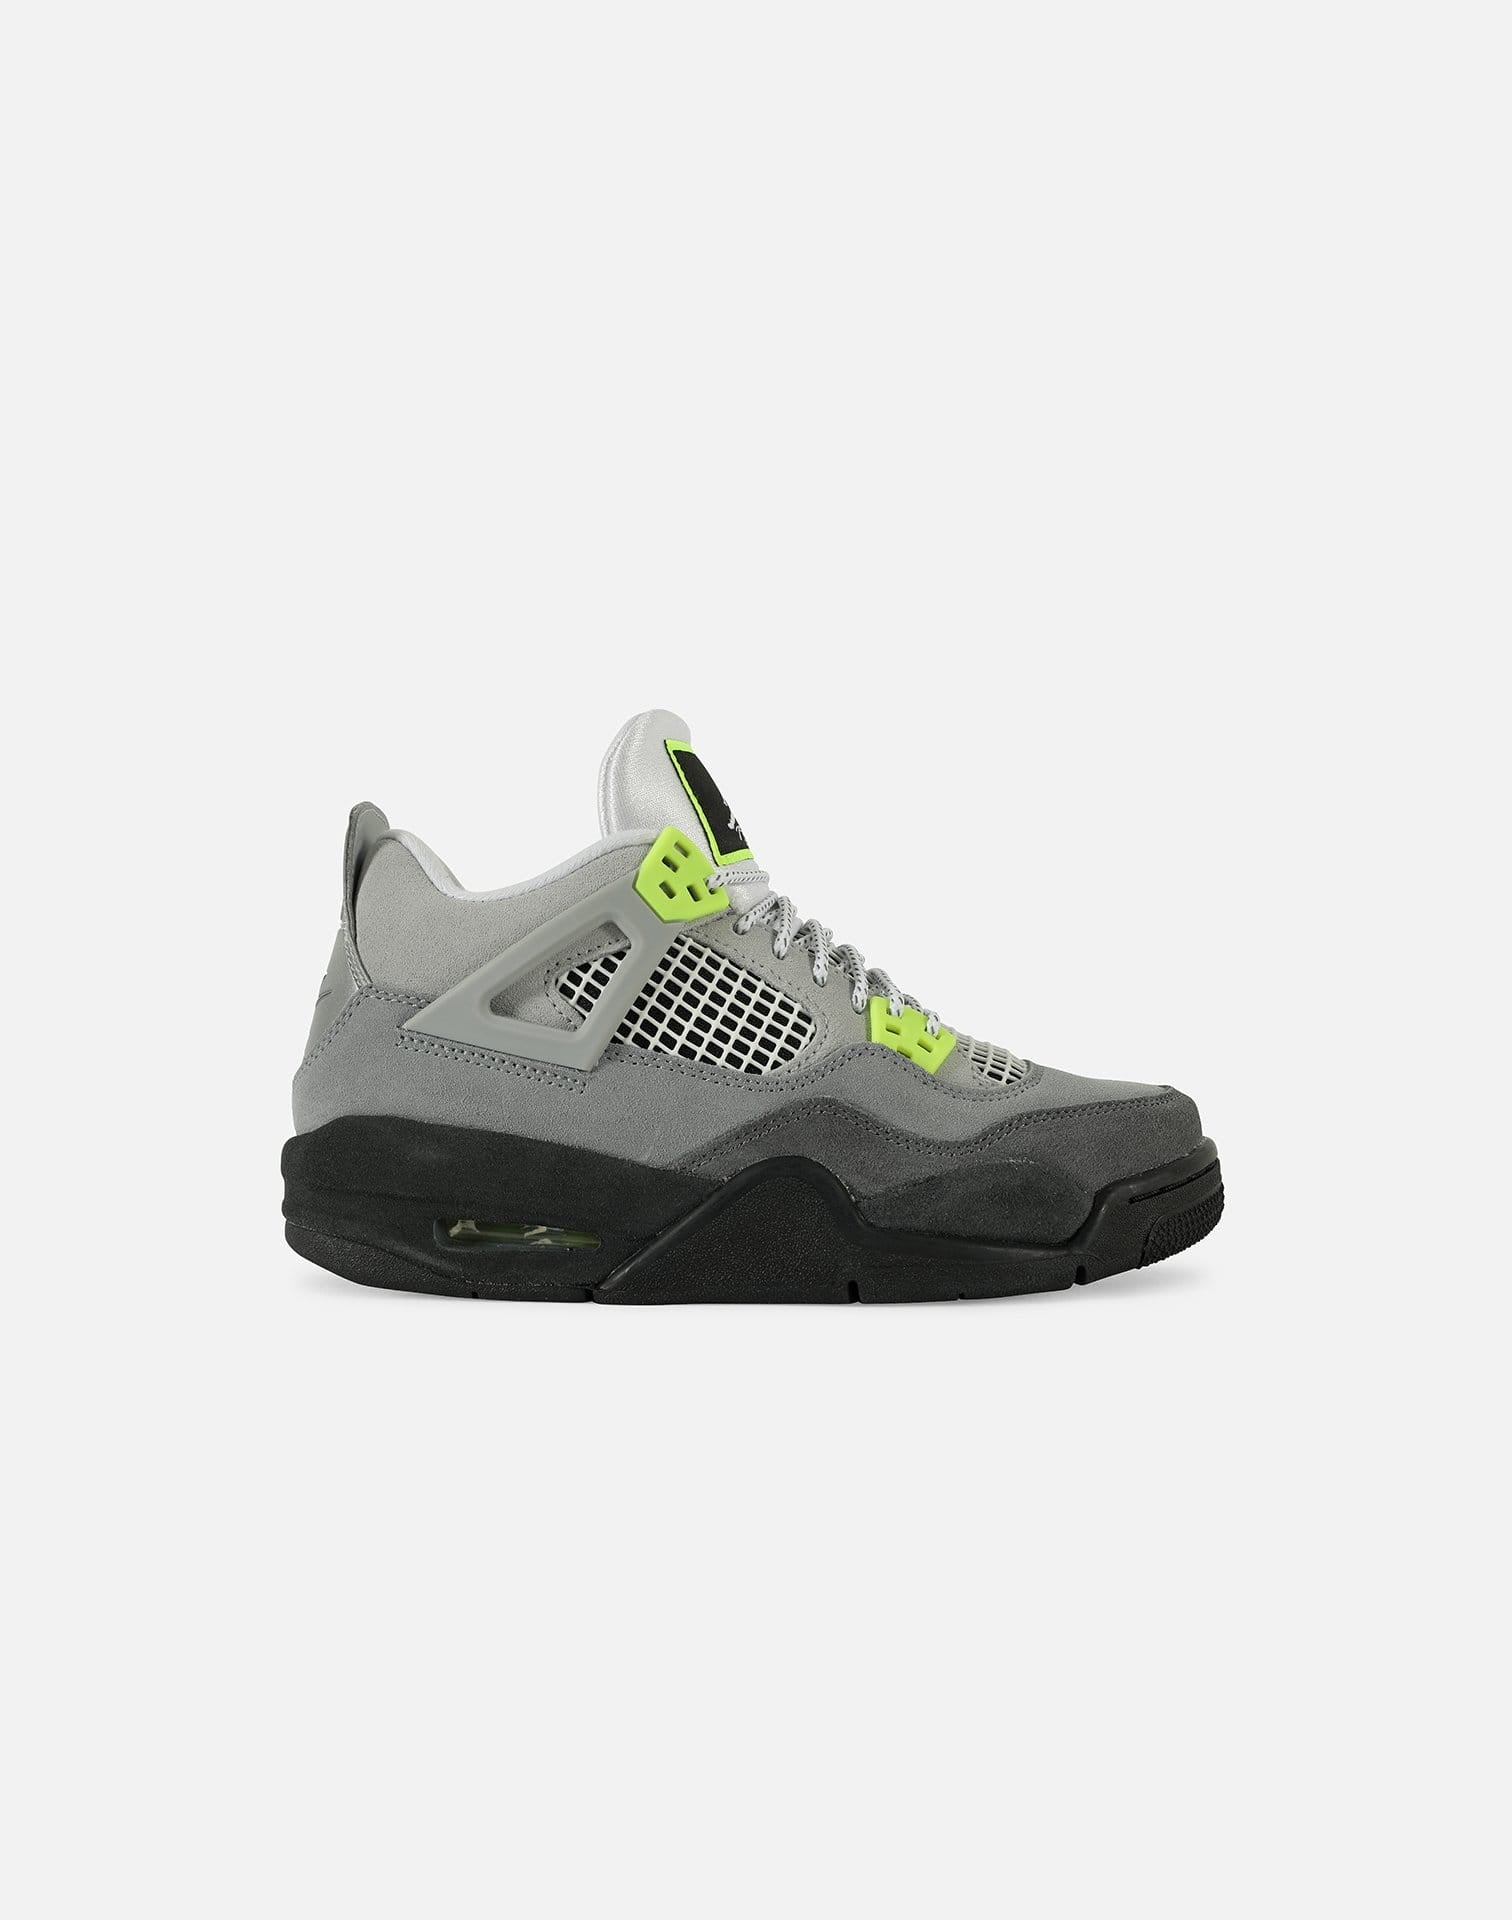 Jordan AIR JORDAN RETRO 4 '95 NEON GRADE-SCHOOL